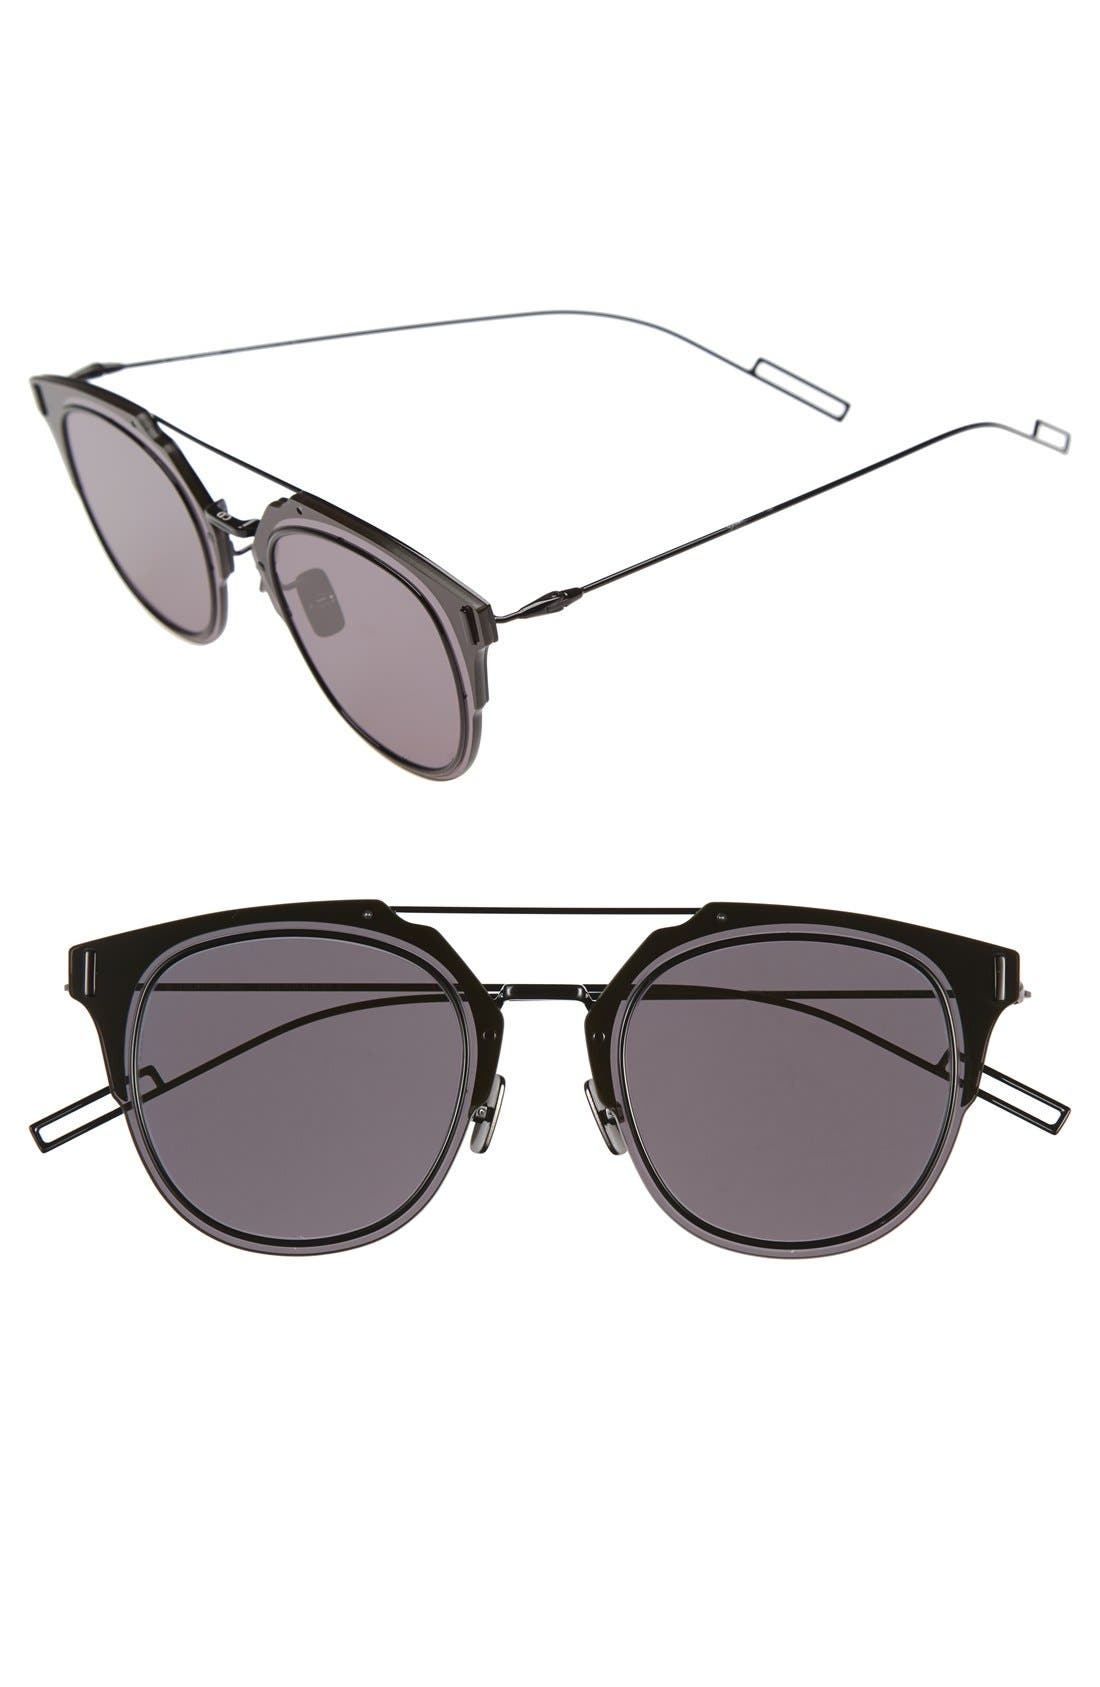 DIOR 'Composit 1.0S' 62mm Metal Shield Sunglasses, Main, color, DARK GREY BLACK/ GREY